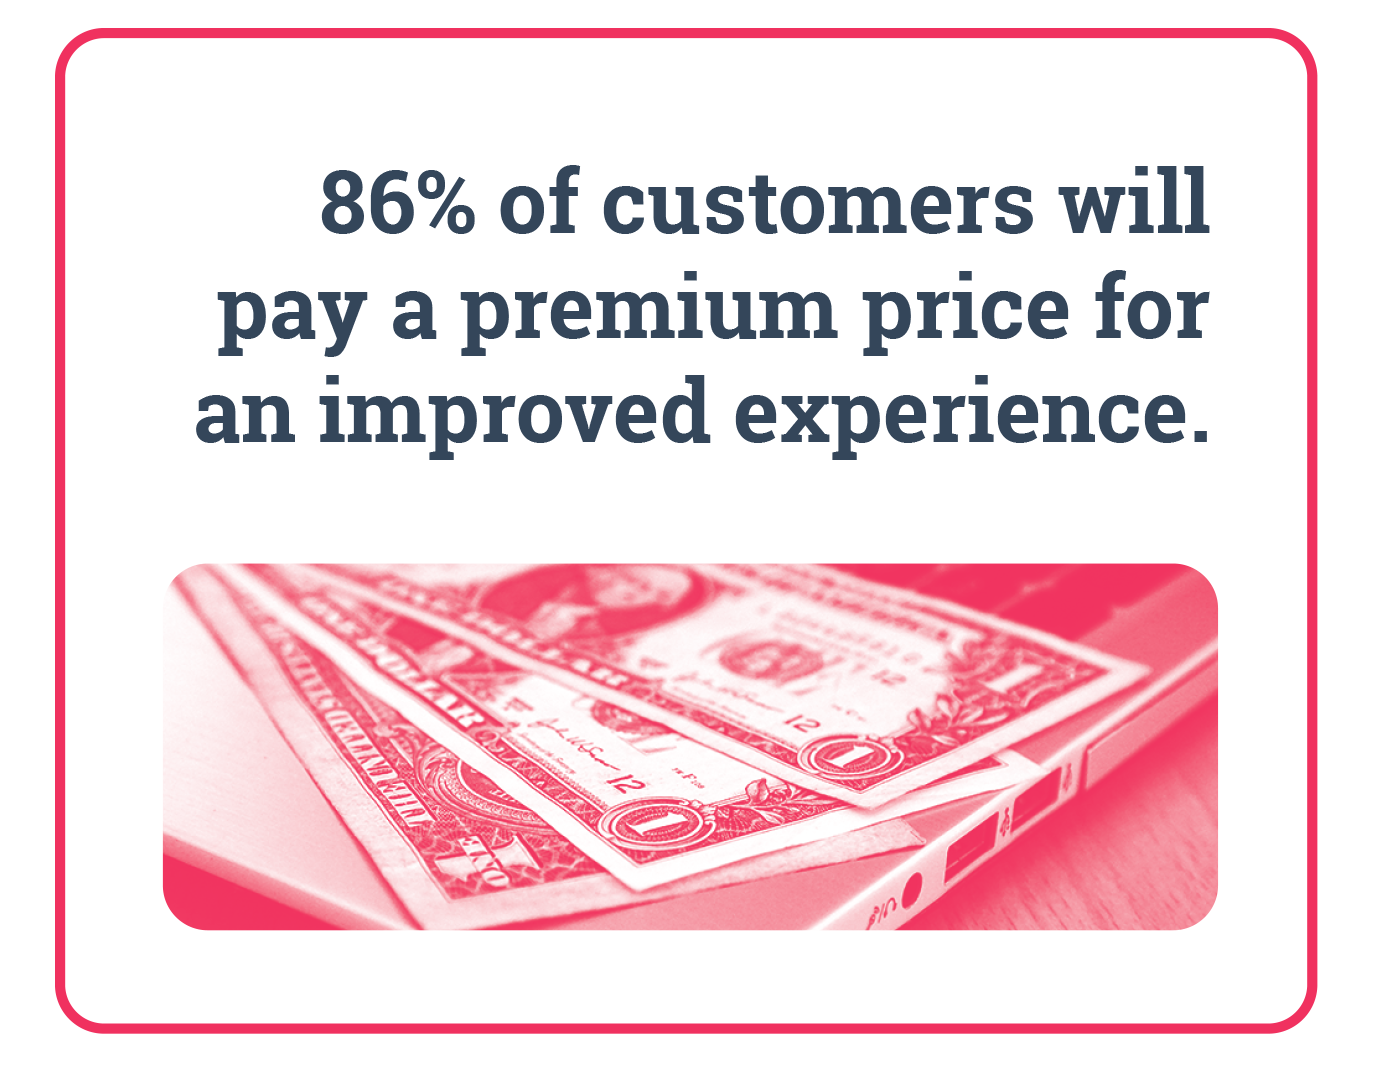 86% of customers will pay a premium price for an improved experience. Data Integration.